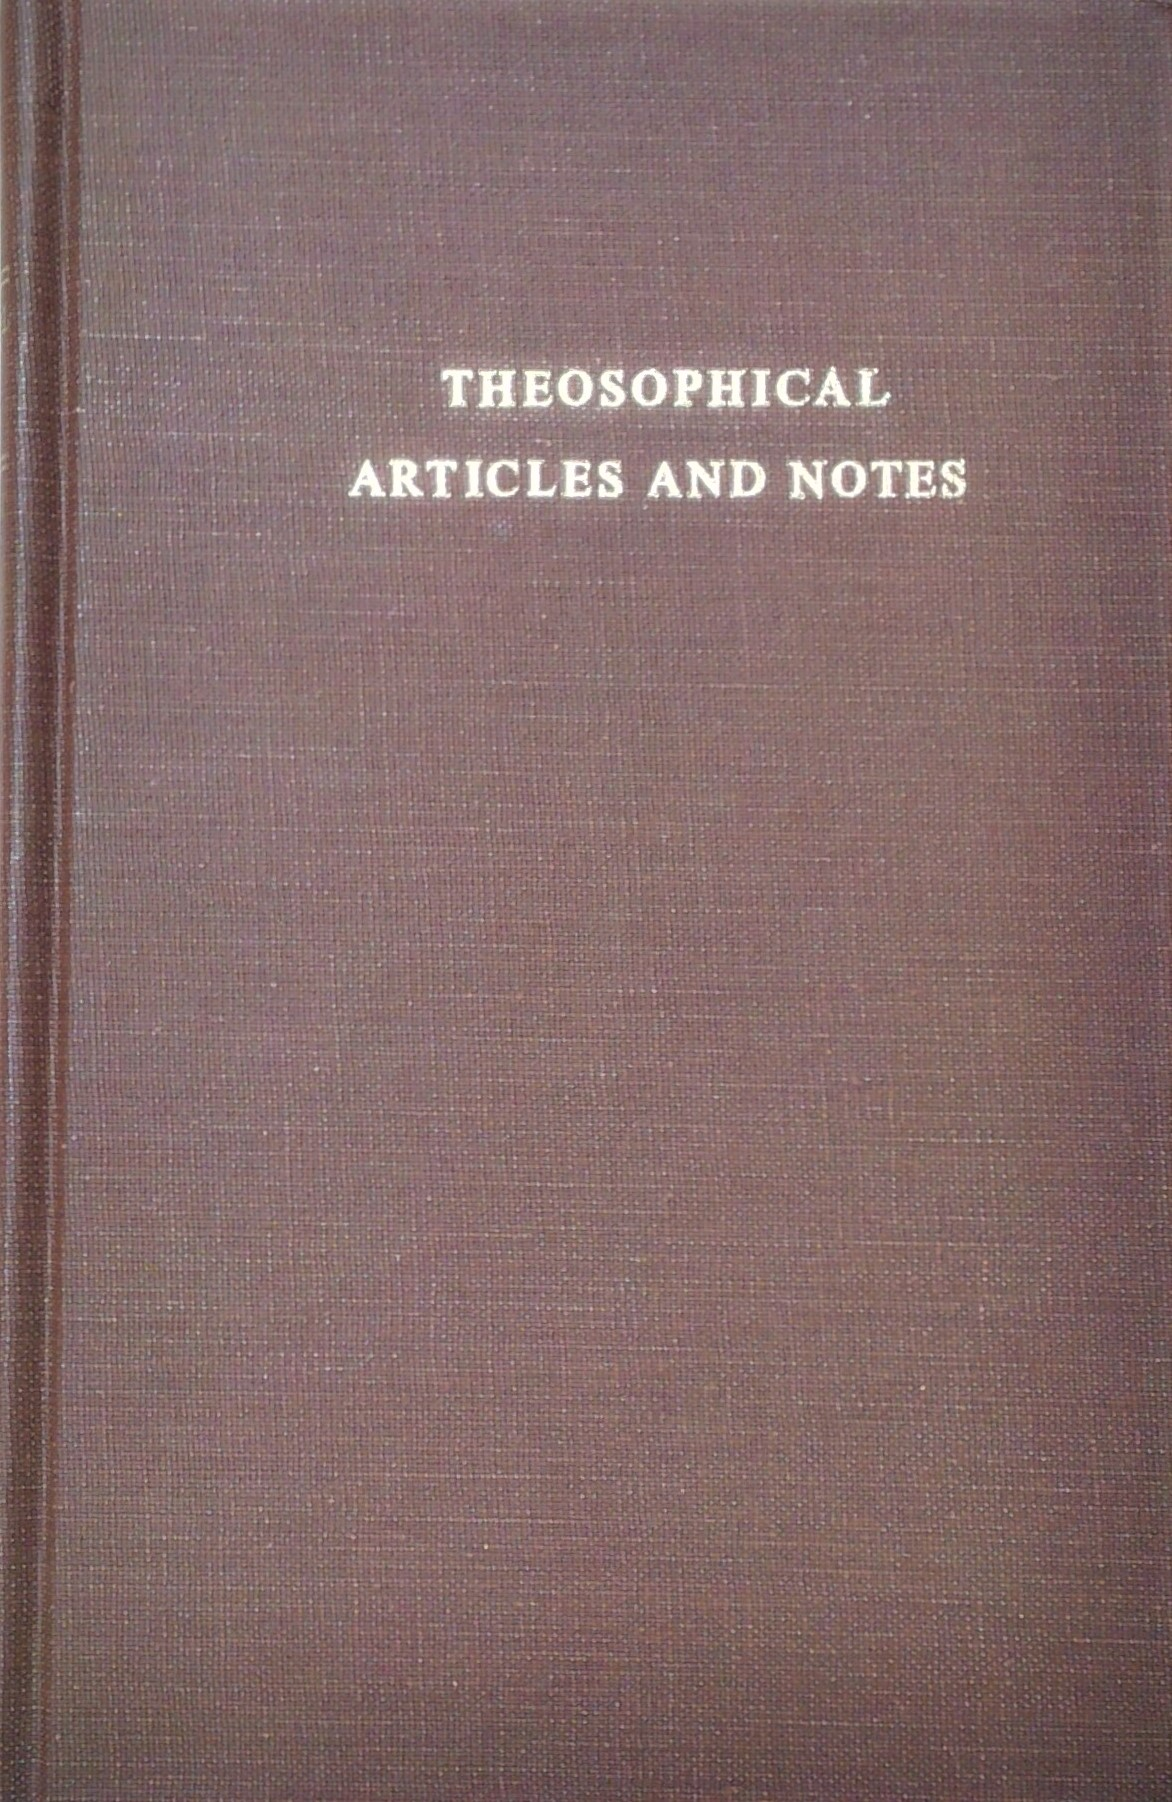 Theosophical Articles and Notes by A.P.Sinnett, Damodar Mavalankar, H.P.Blavatsky, Robert Crosbie, William Q Judge